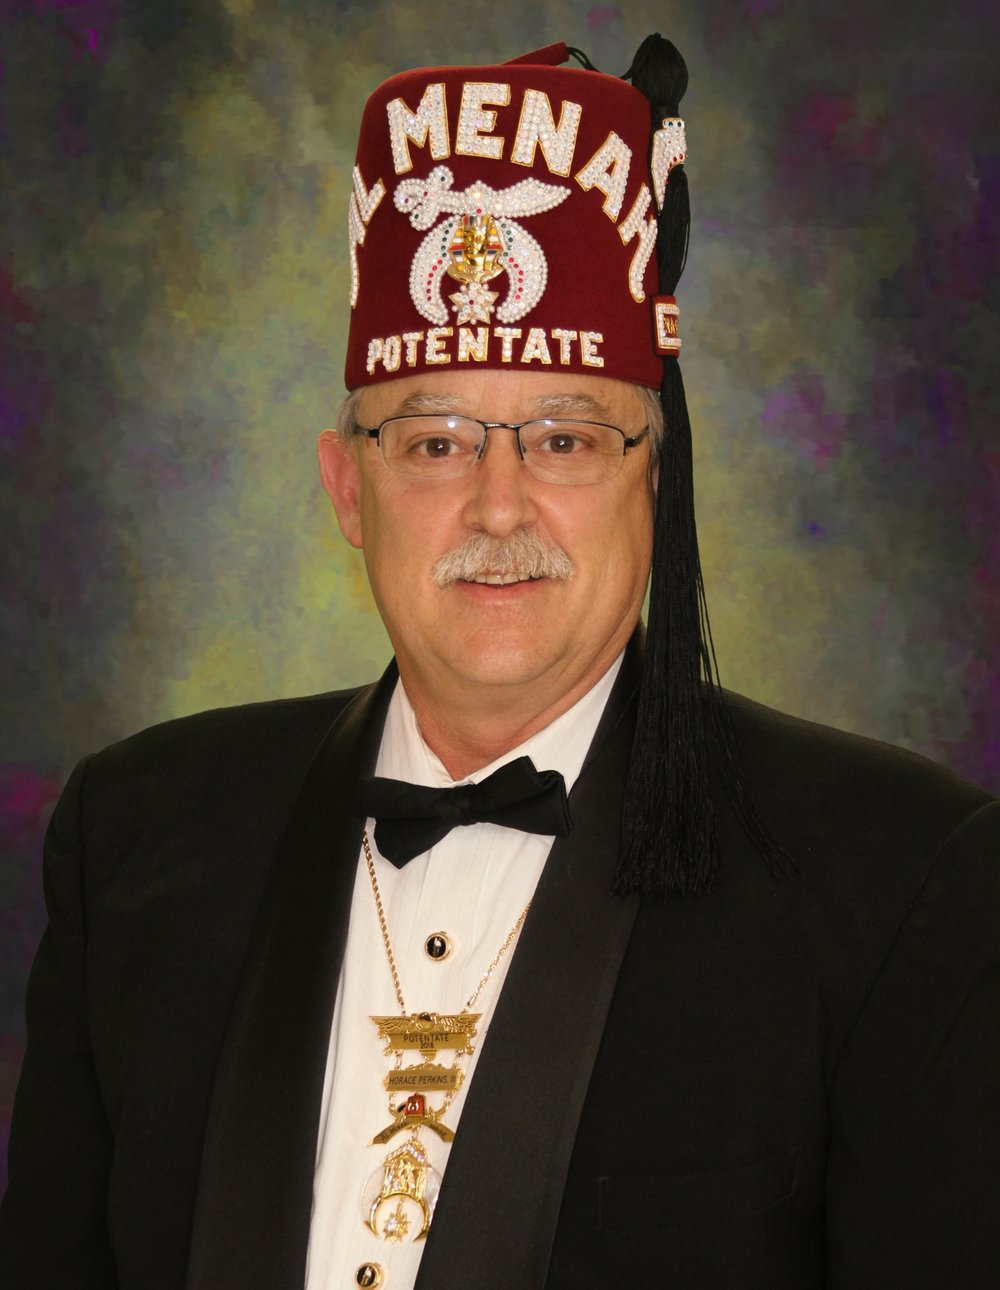 Horace Perkins, III, Potentate